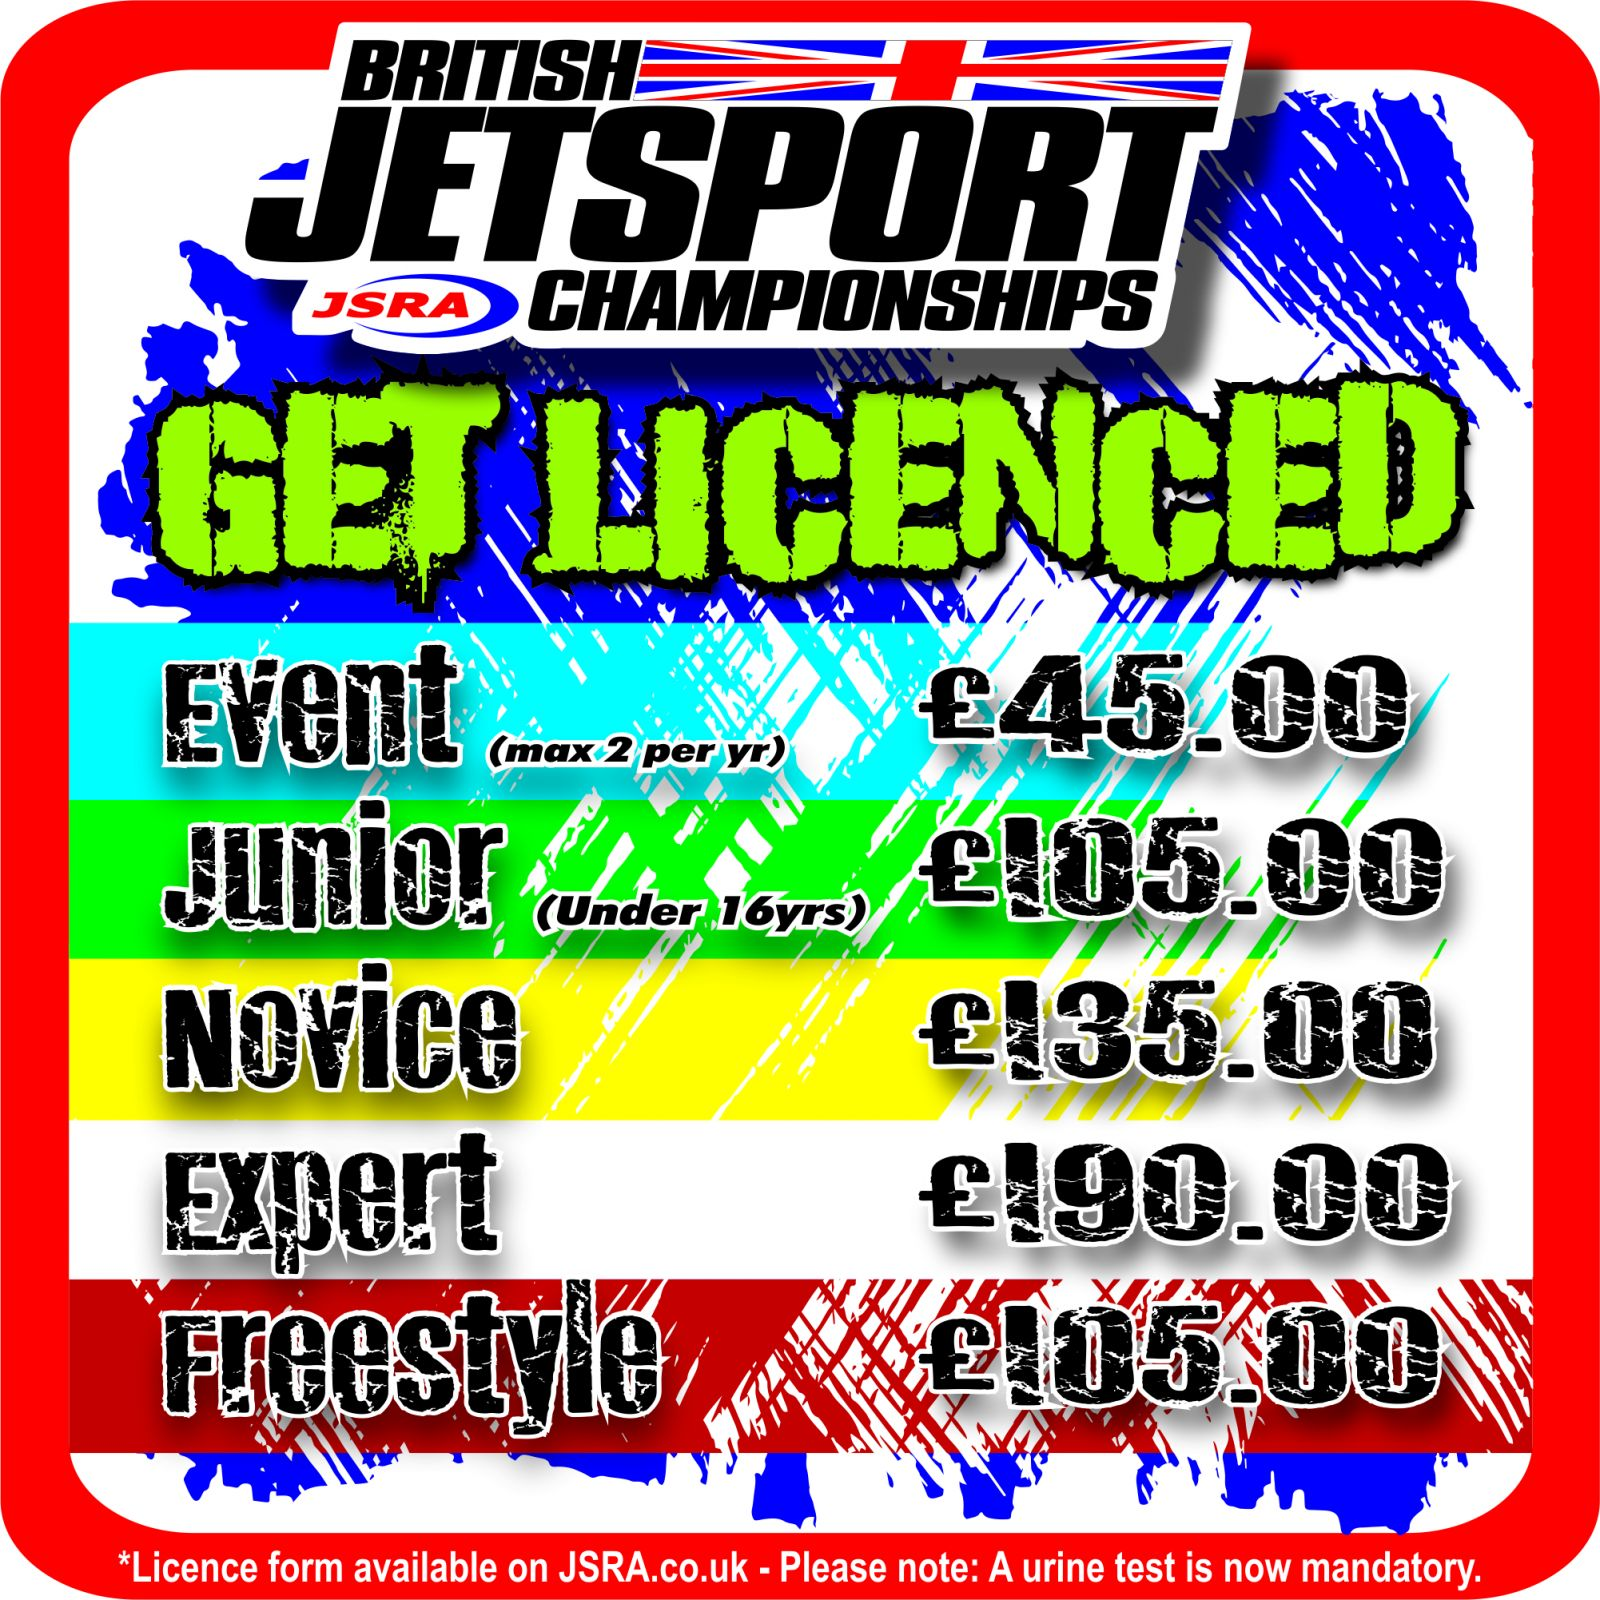 2019 British Jetsport Championships Race/Freestyle Licence Fees